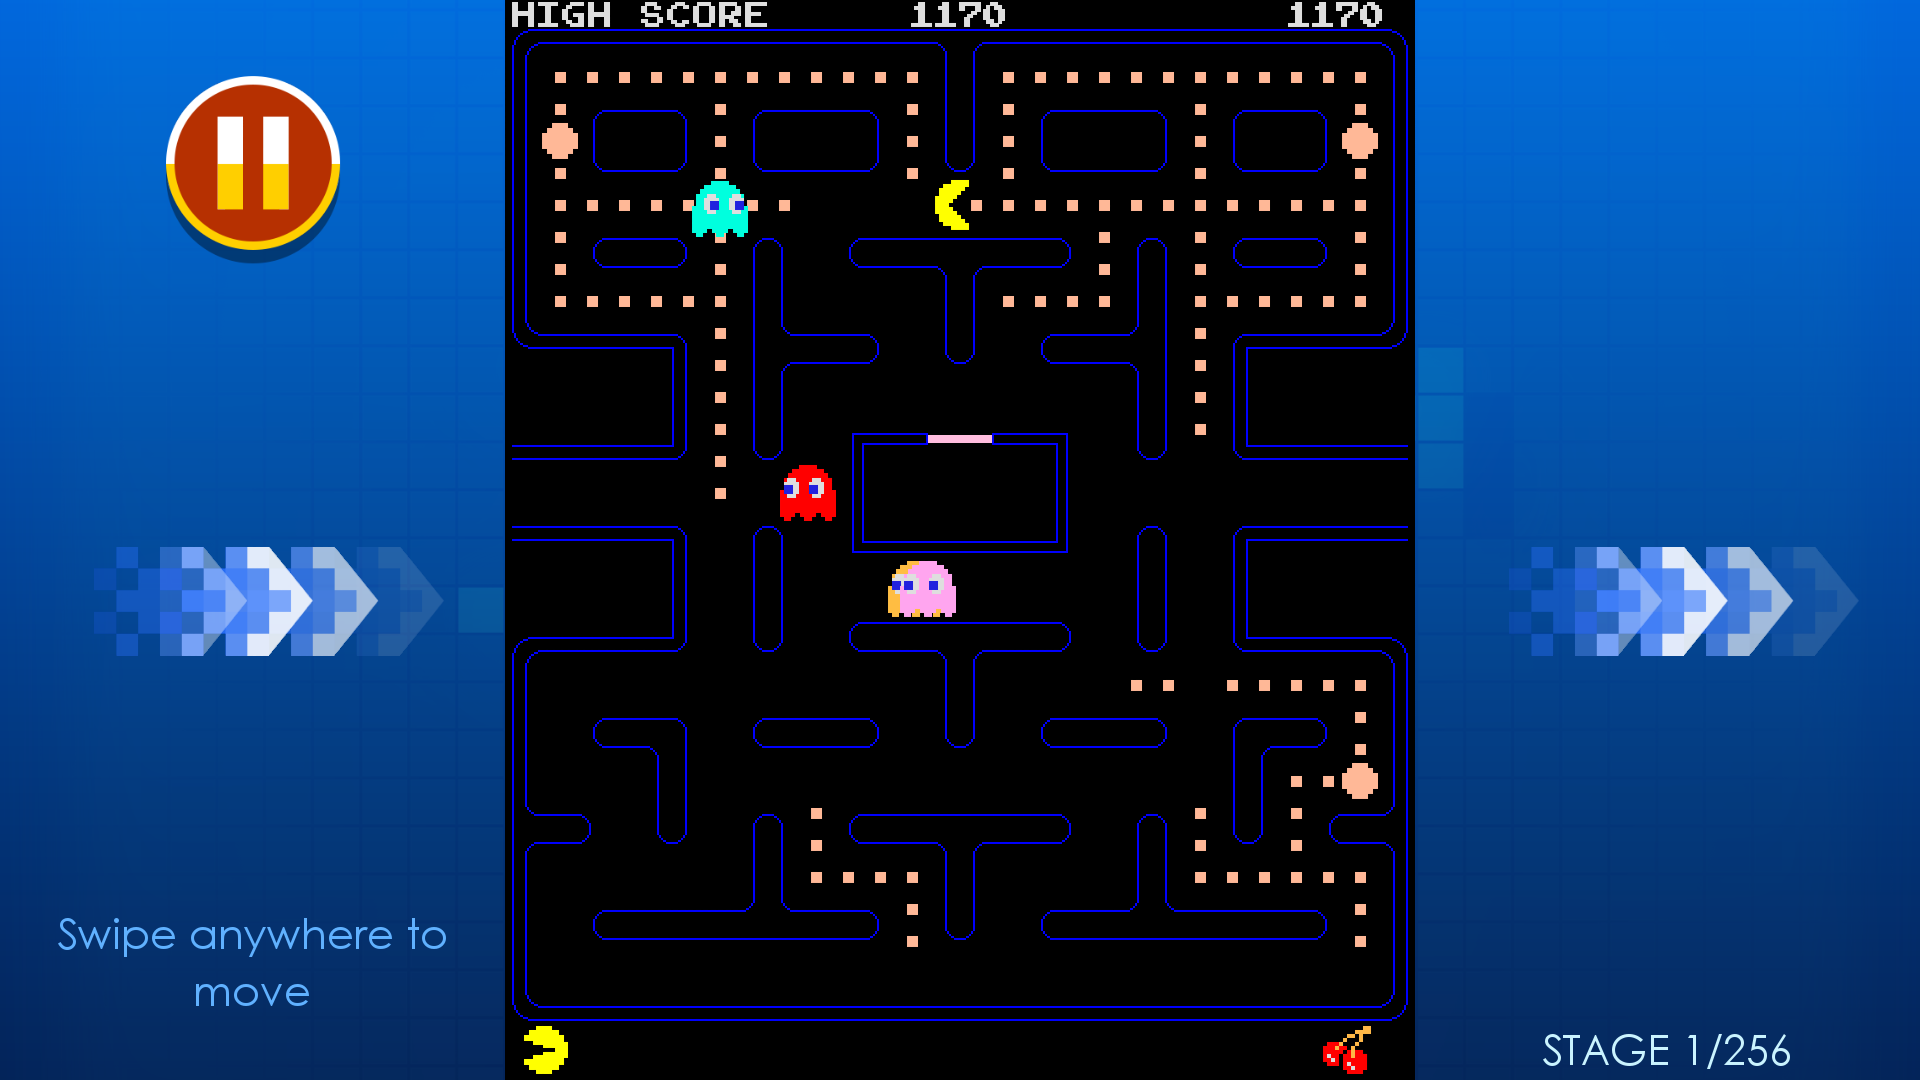 Download Arcade Game PAC-MAN Classical Version APK